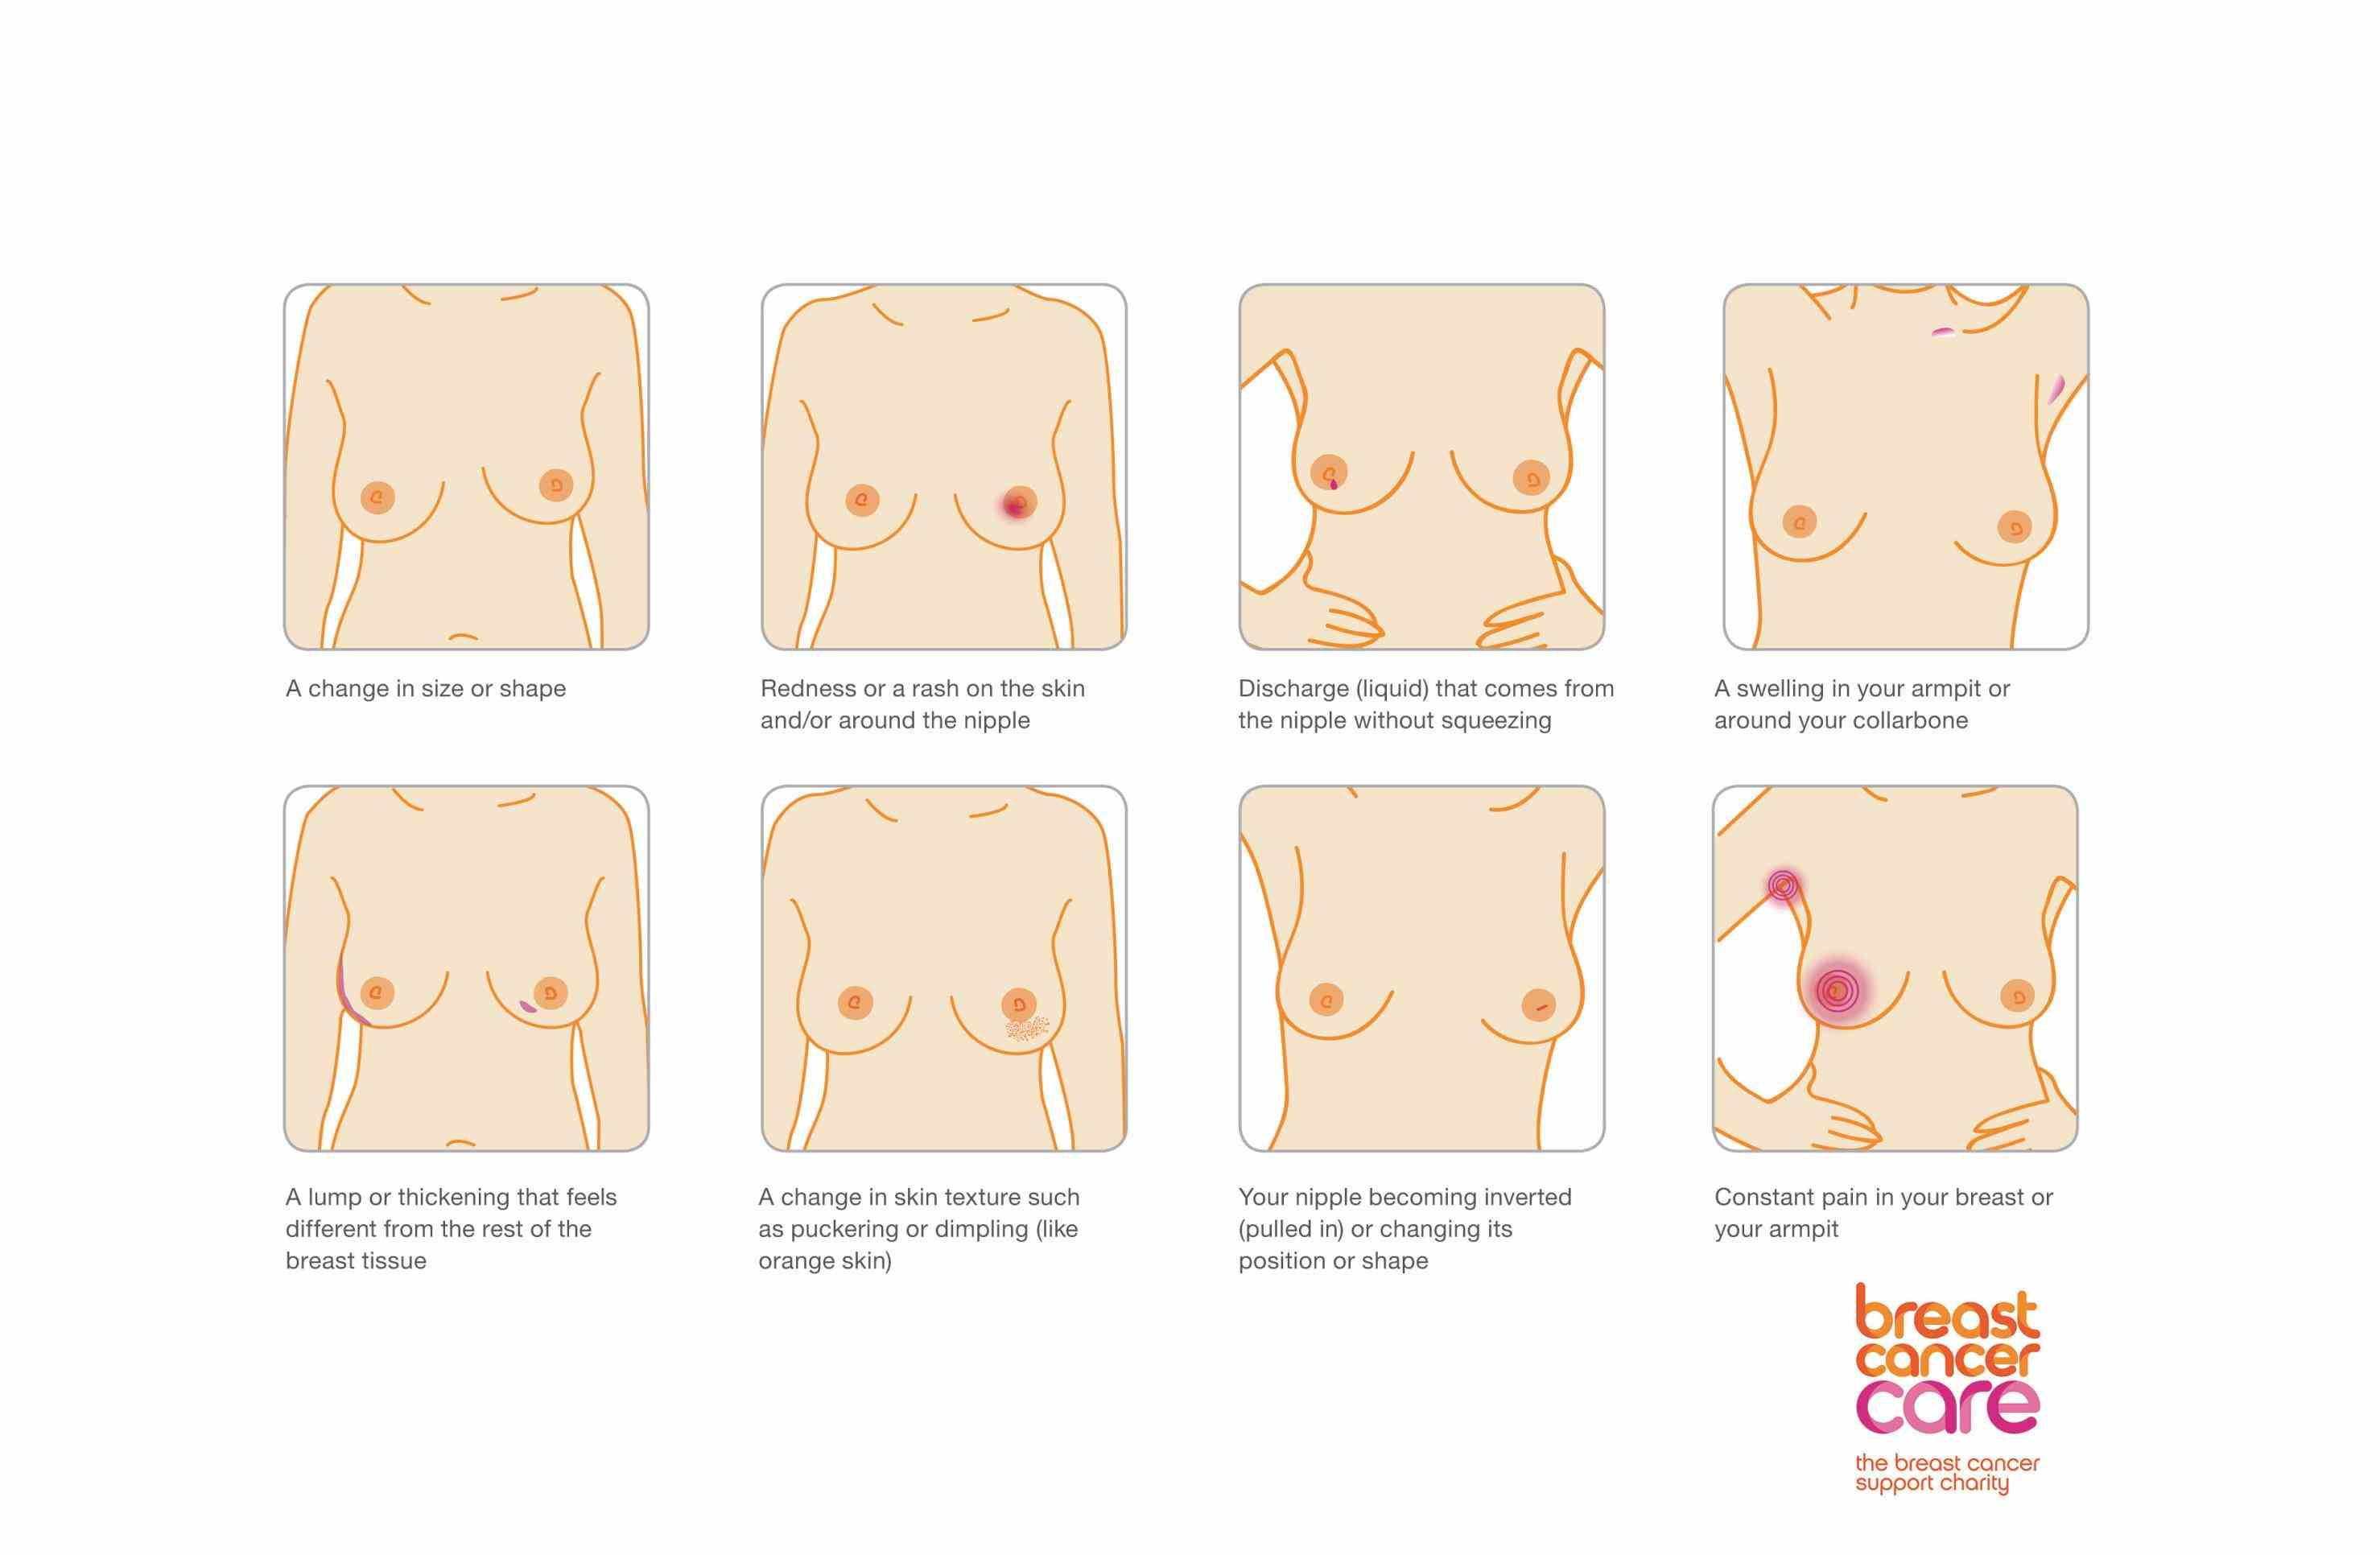 Can You Have Breast Cancer With No Symptoms Pictures Wallpapers